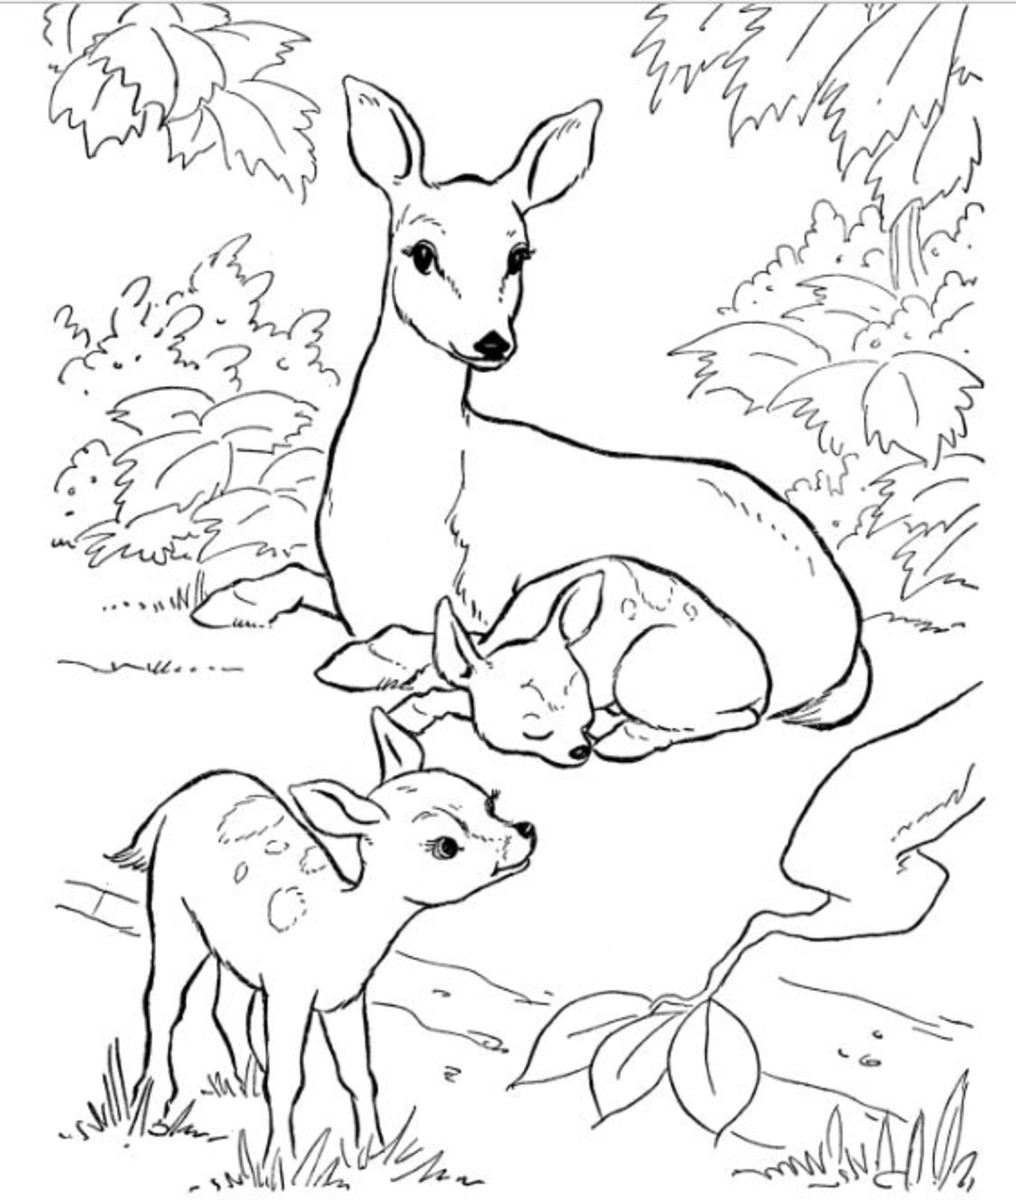 backyard-animals-and-nature-coloring-books